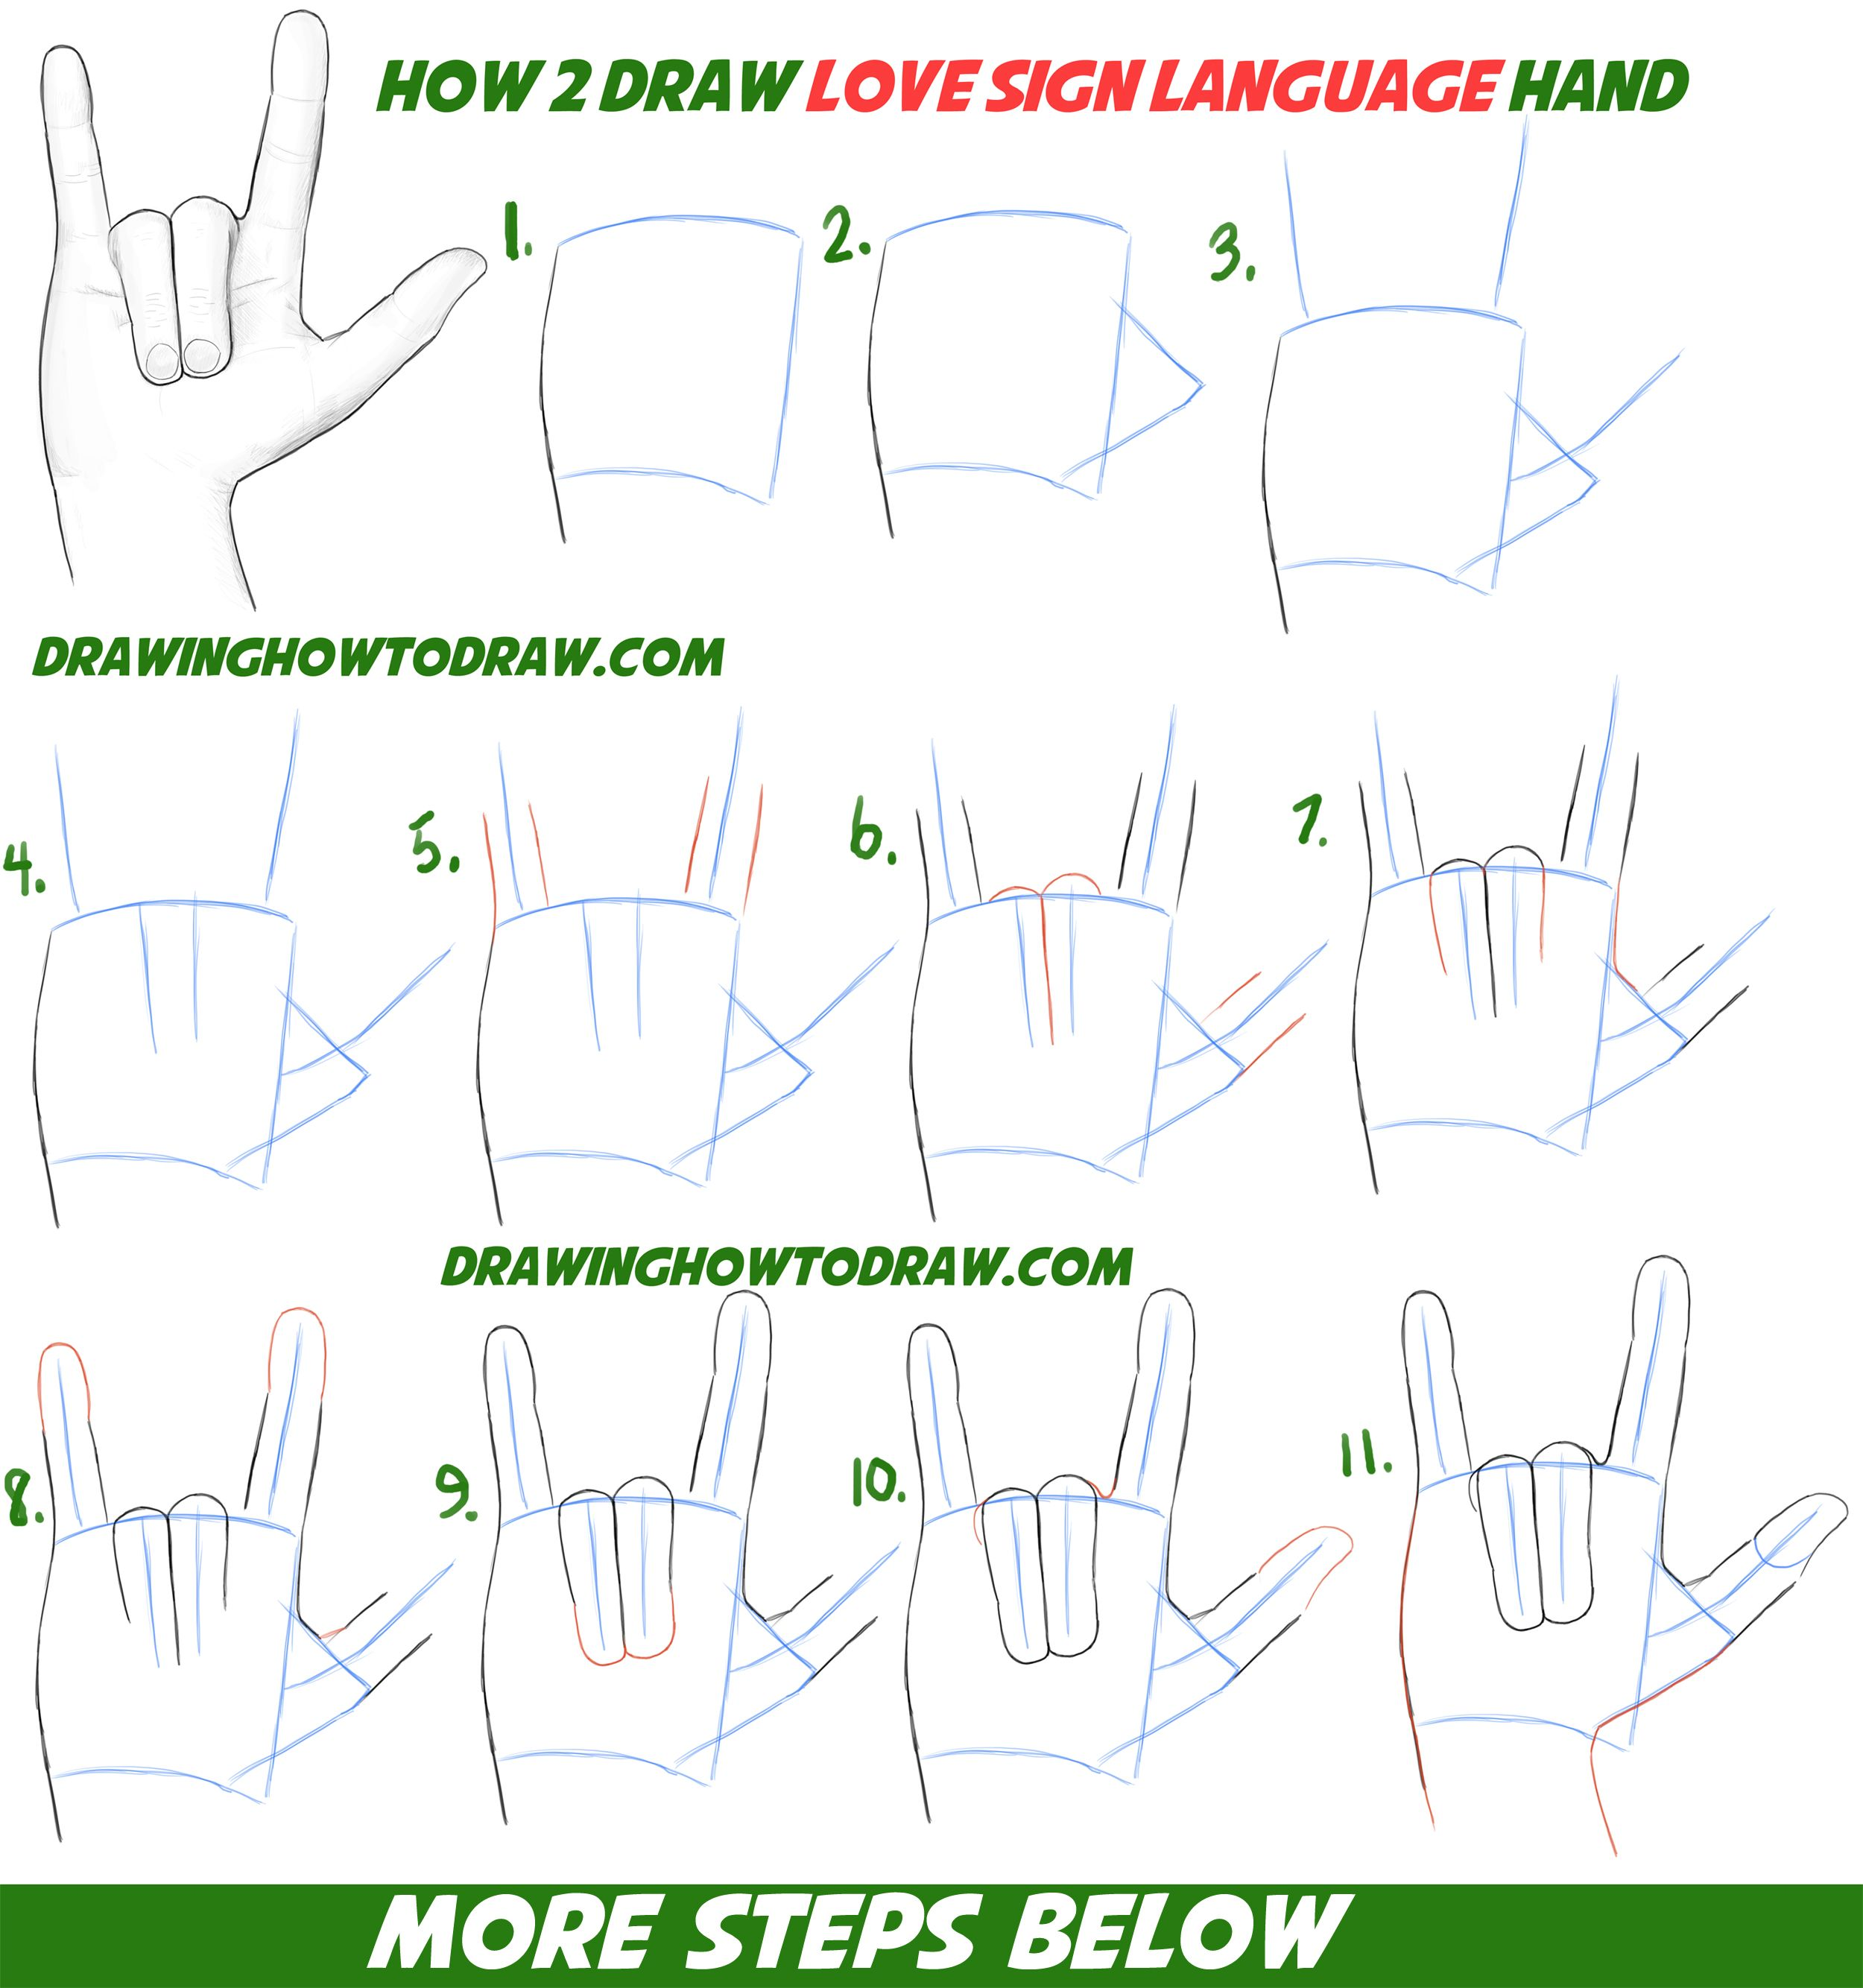 Draw Love Hands - Sign Language Easy Step Drawing Tutorial